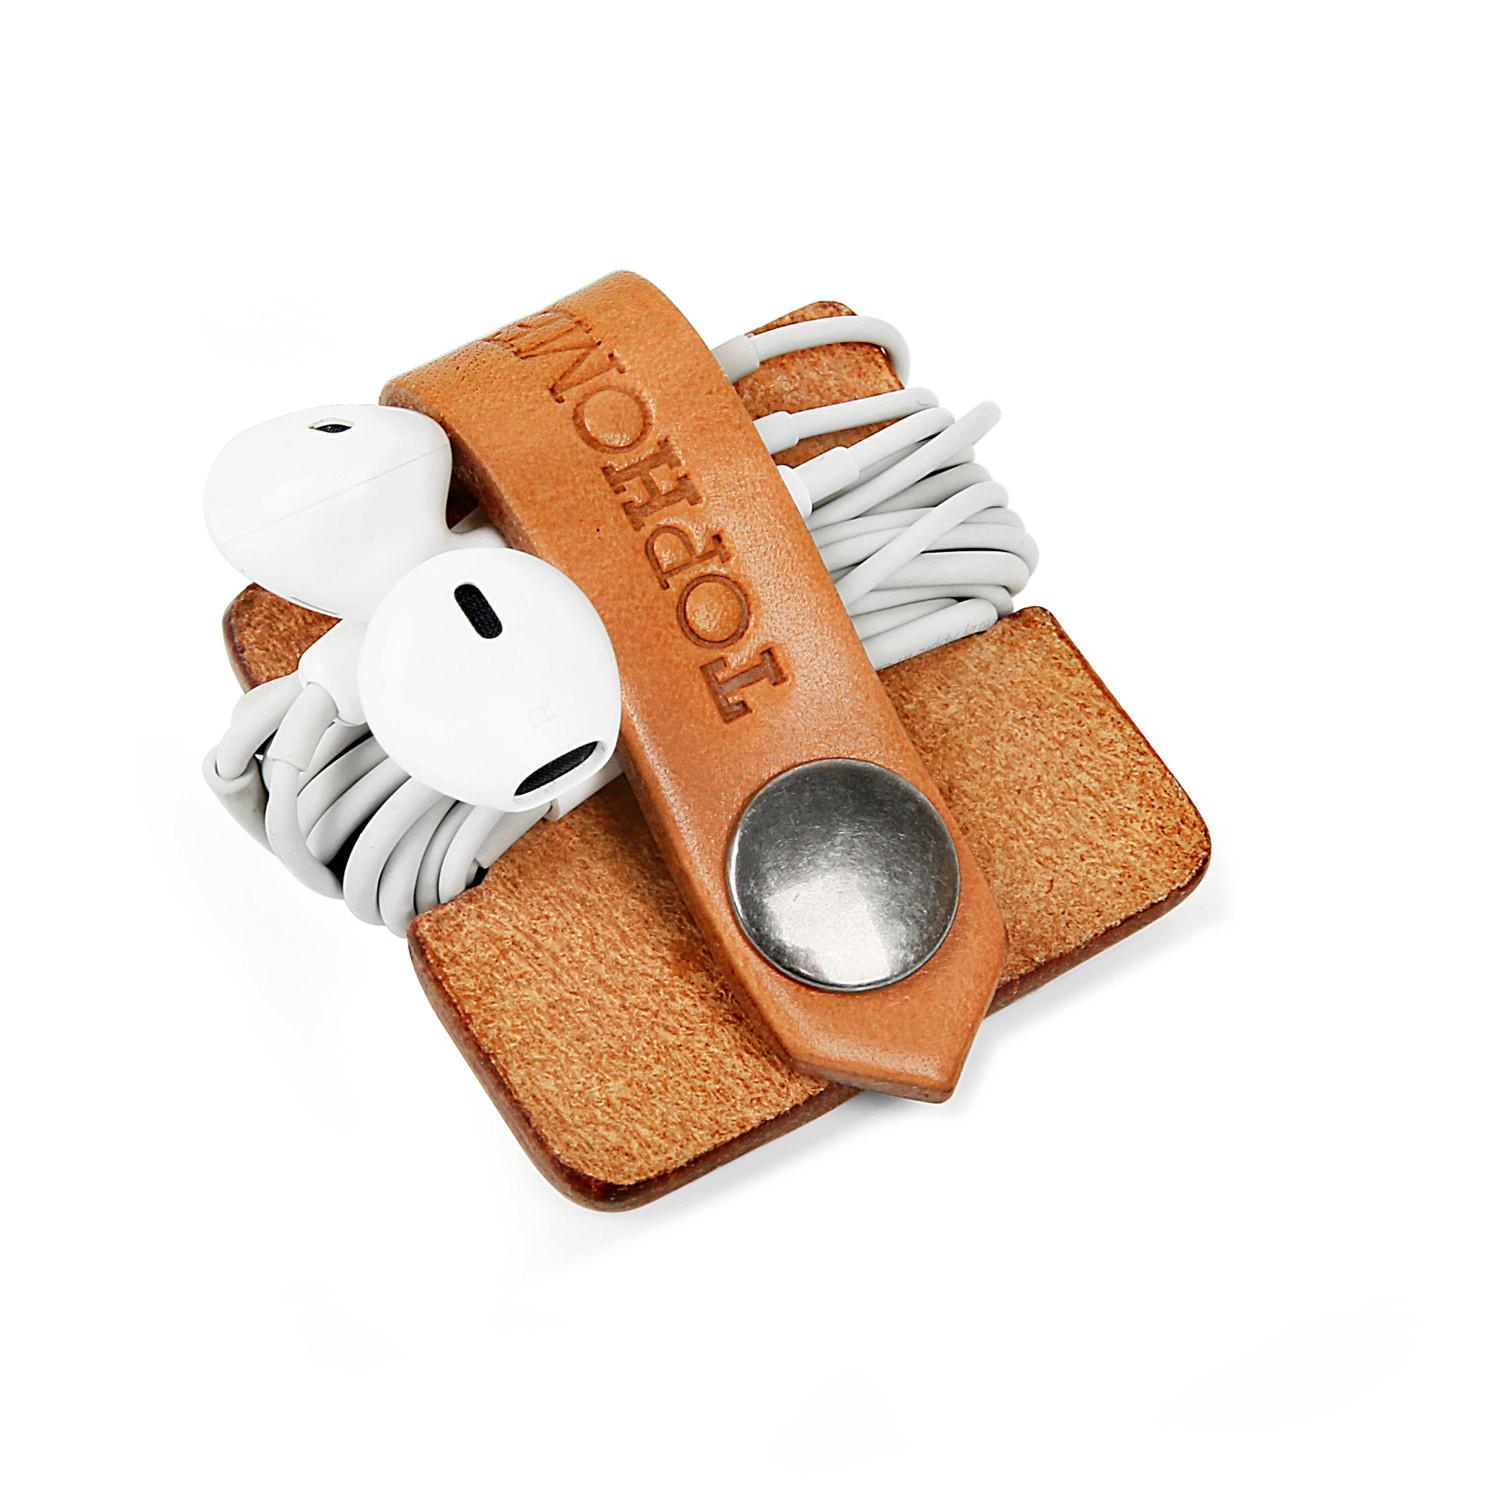 Earphone Organizer Cord Leather Cable Holder Earbud